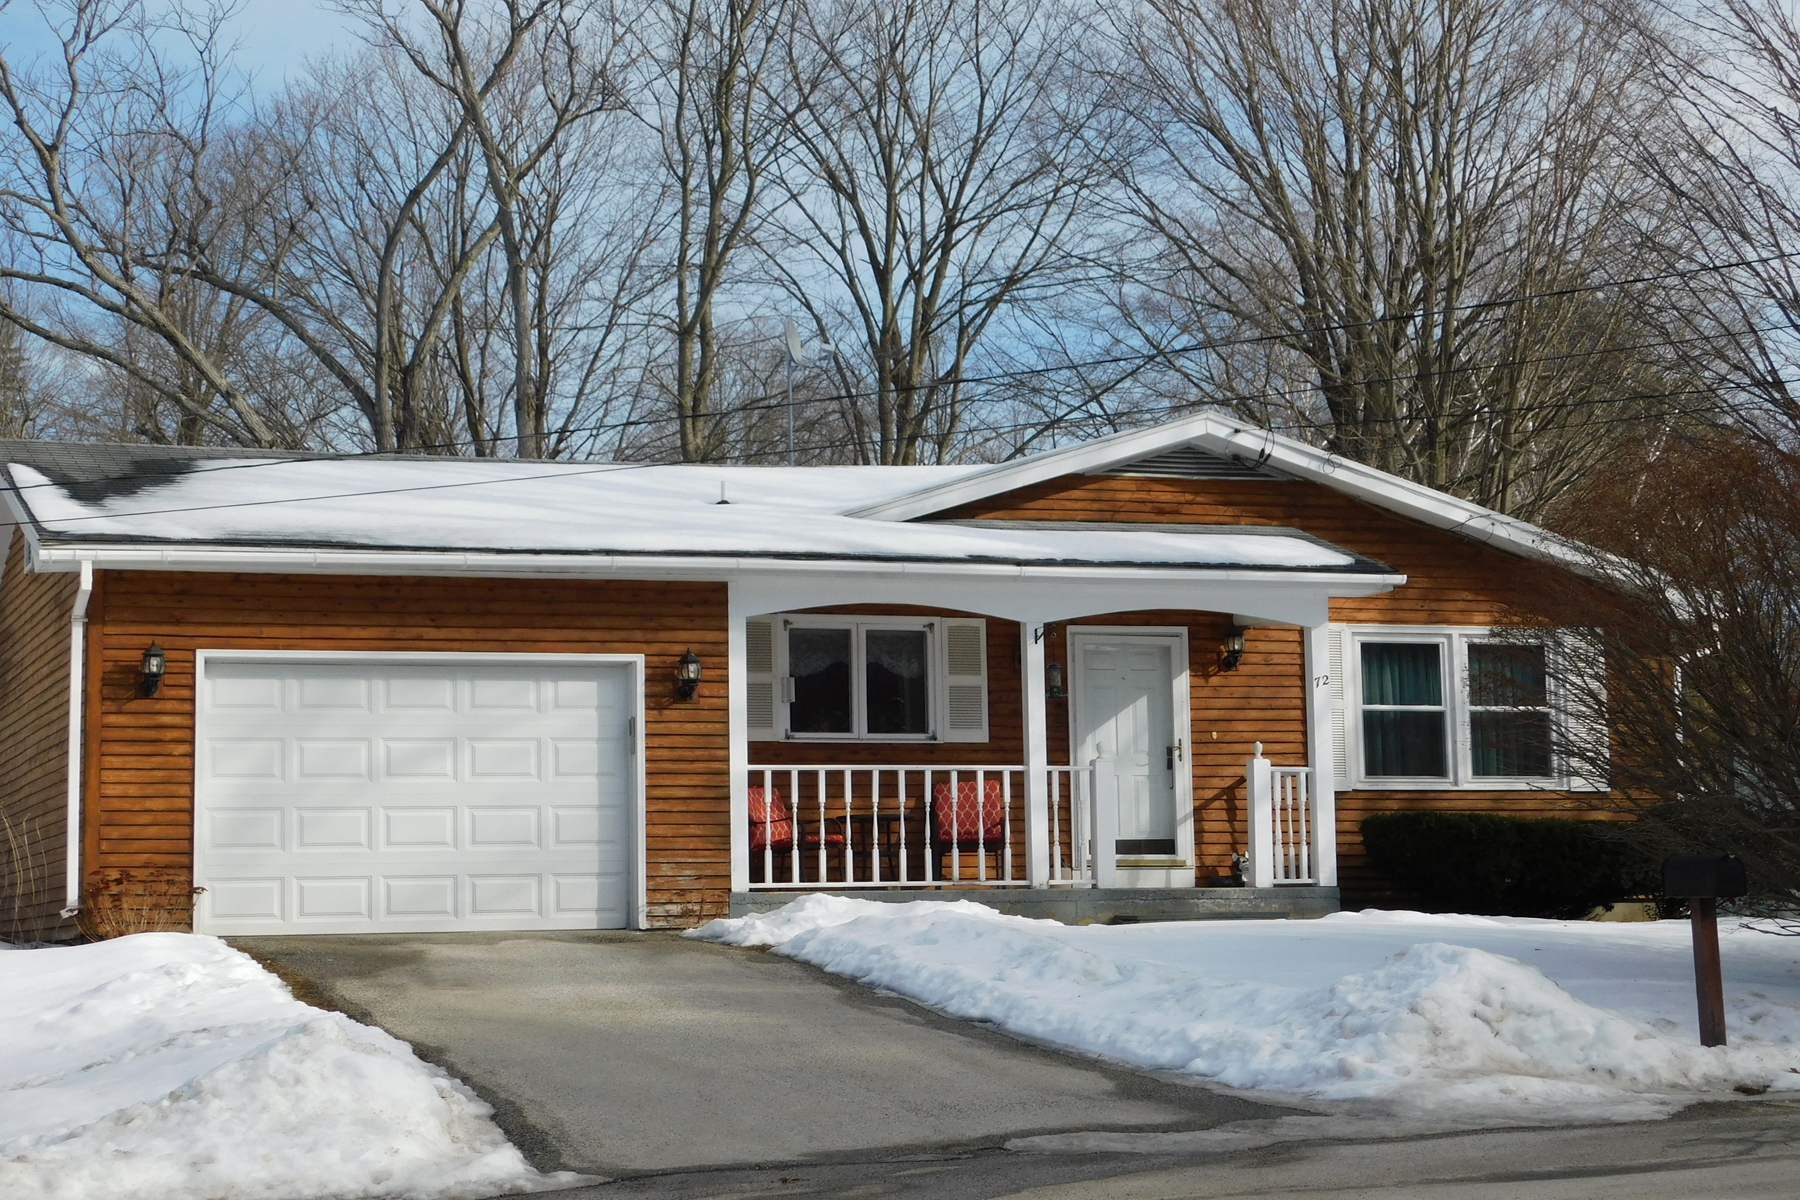 Single Family Homes for Sale at Cute As Can Be! 72 Taft Terrace Wallingford, Vermont 05773 United States